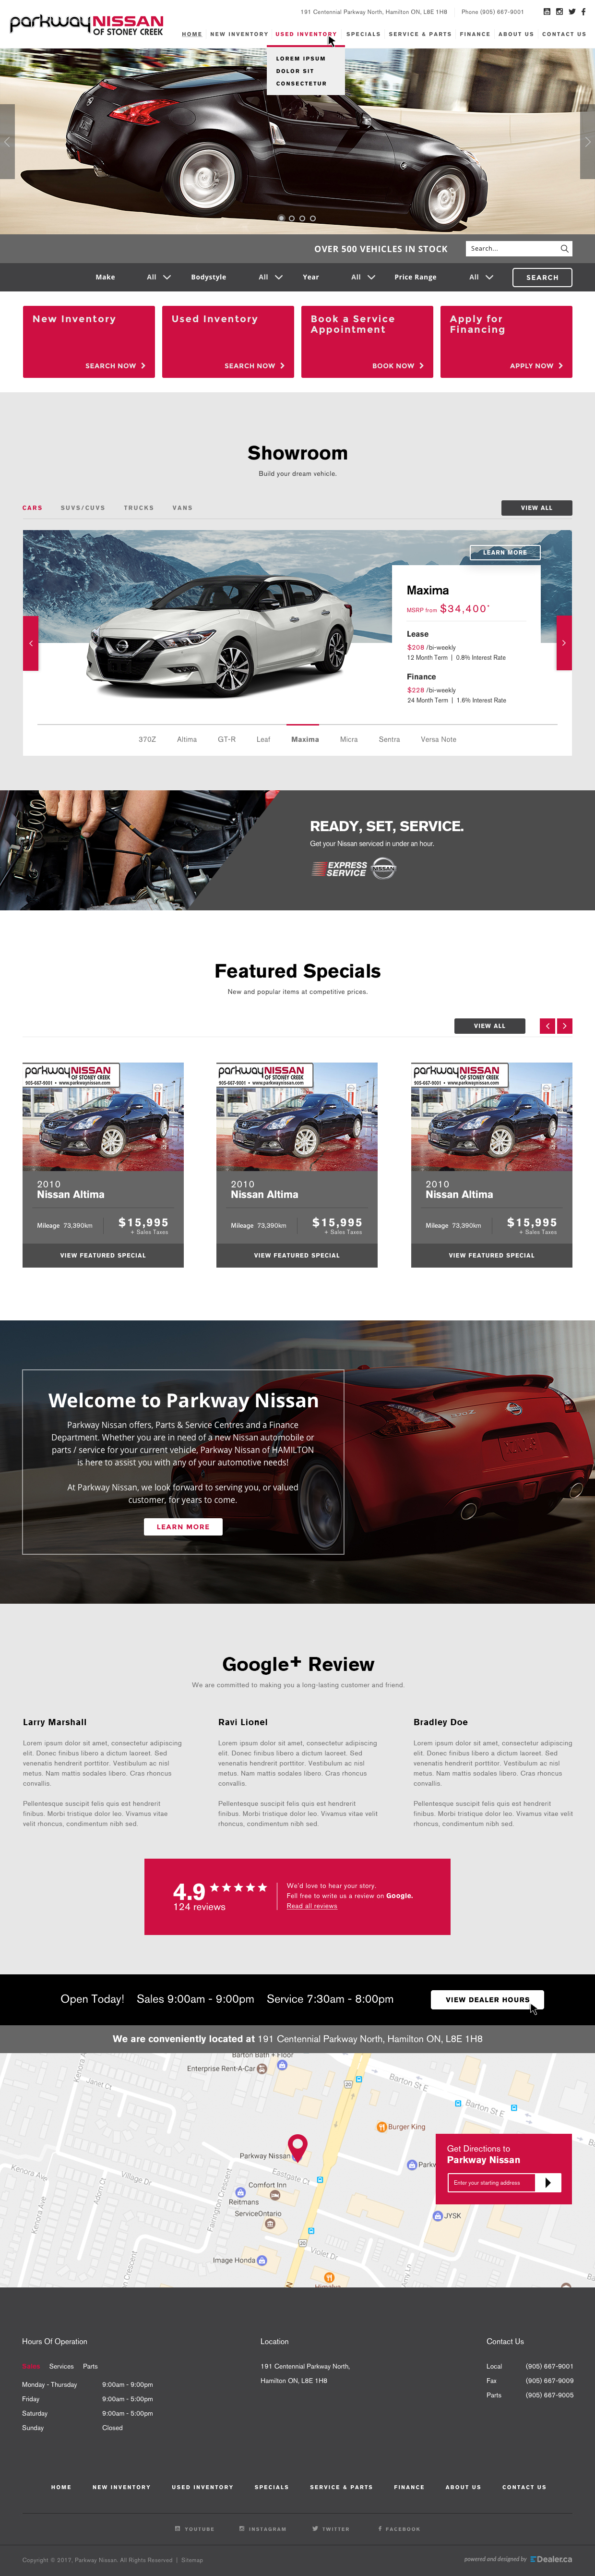 ParkwayNissan-1240px -Final